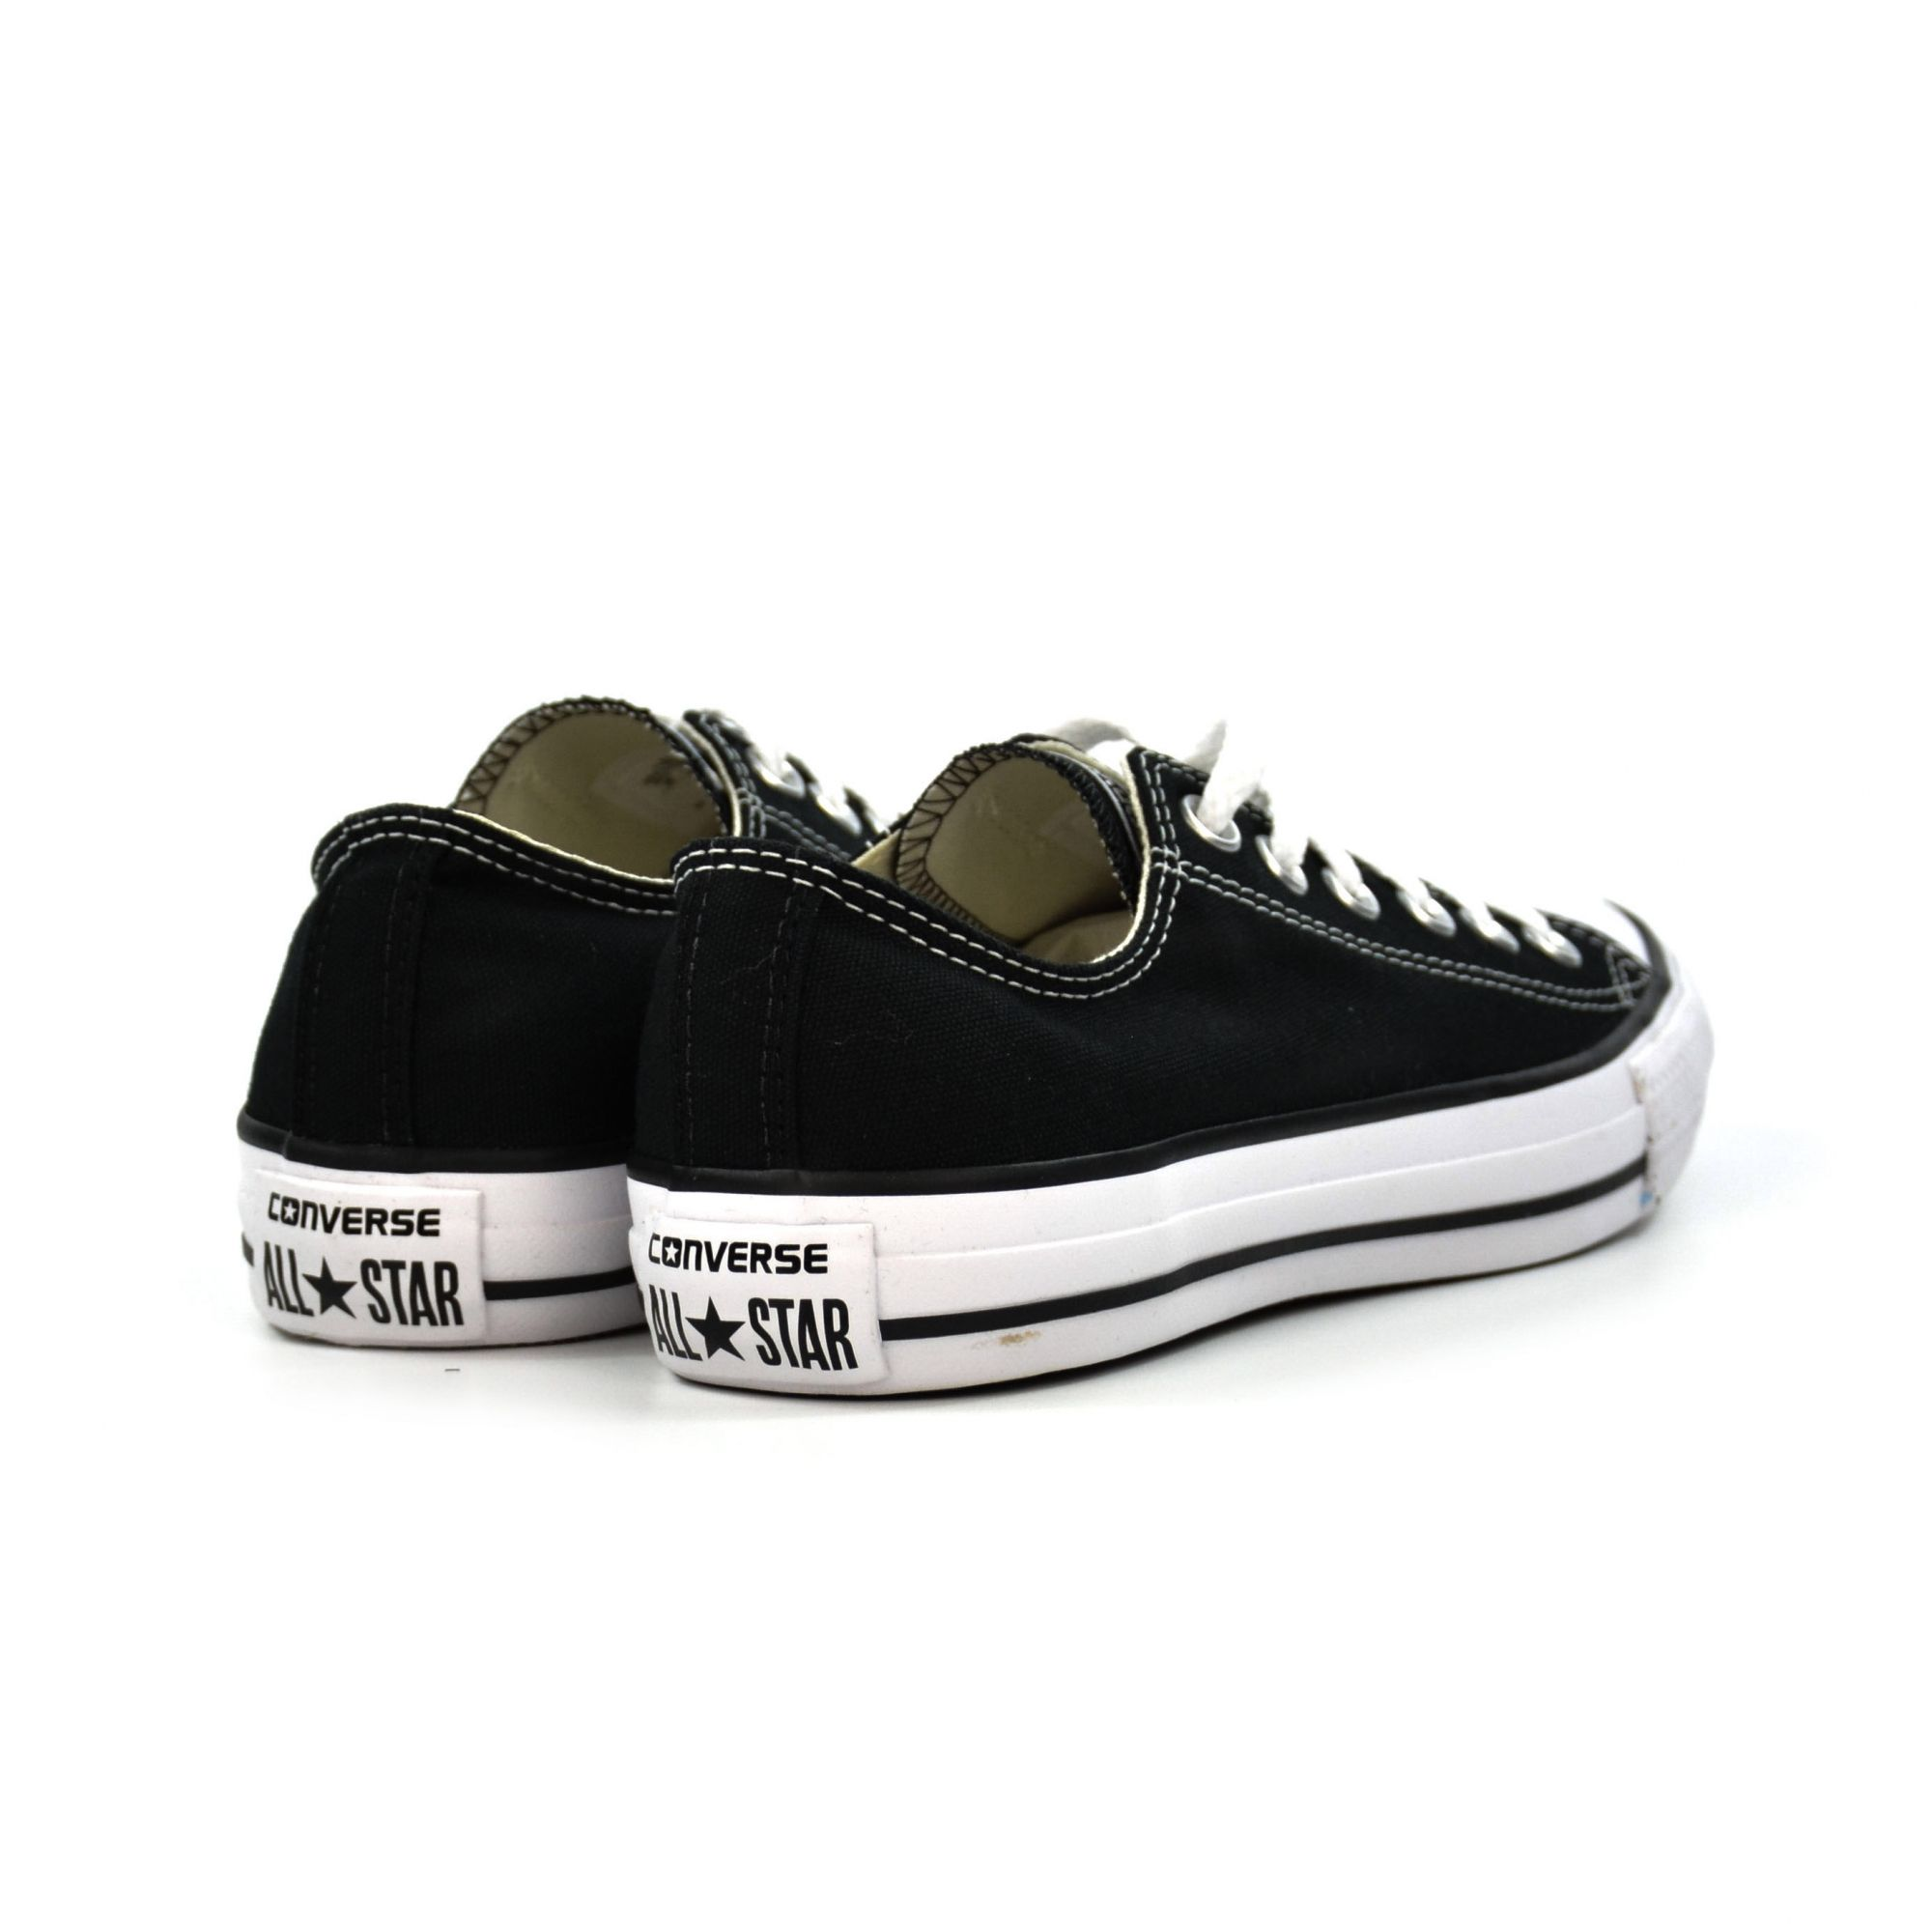 E> TENIS CT00010002 TAYLOR PRETO CONVERSE ALL STAR 18268